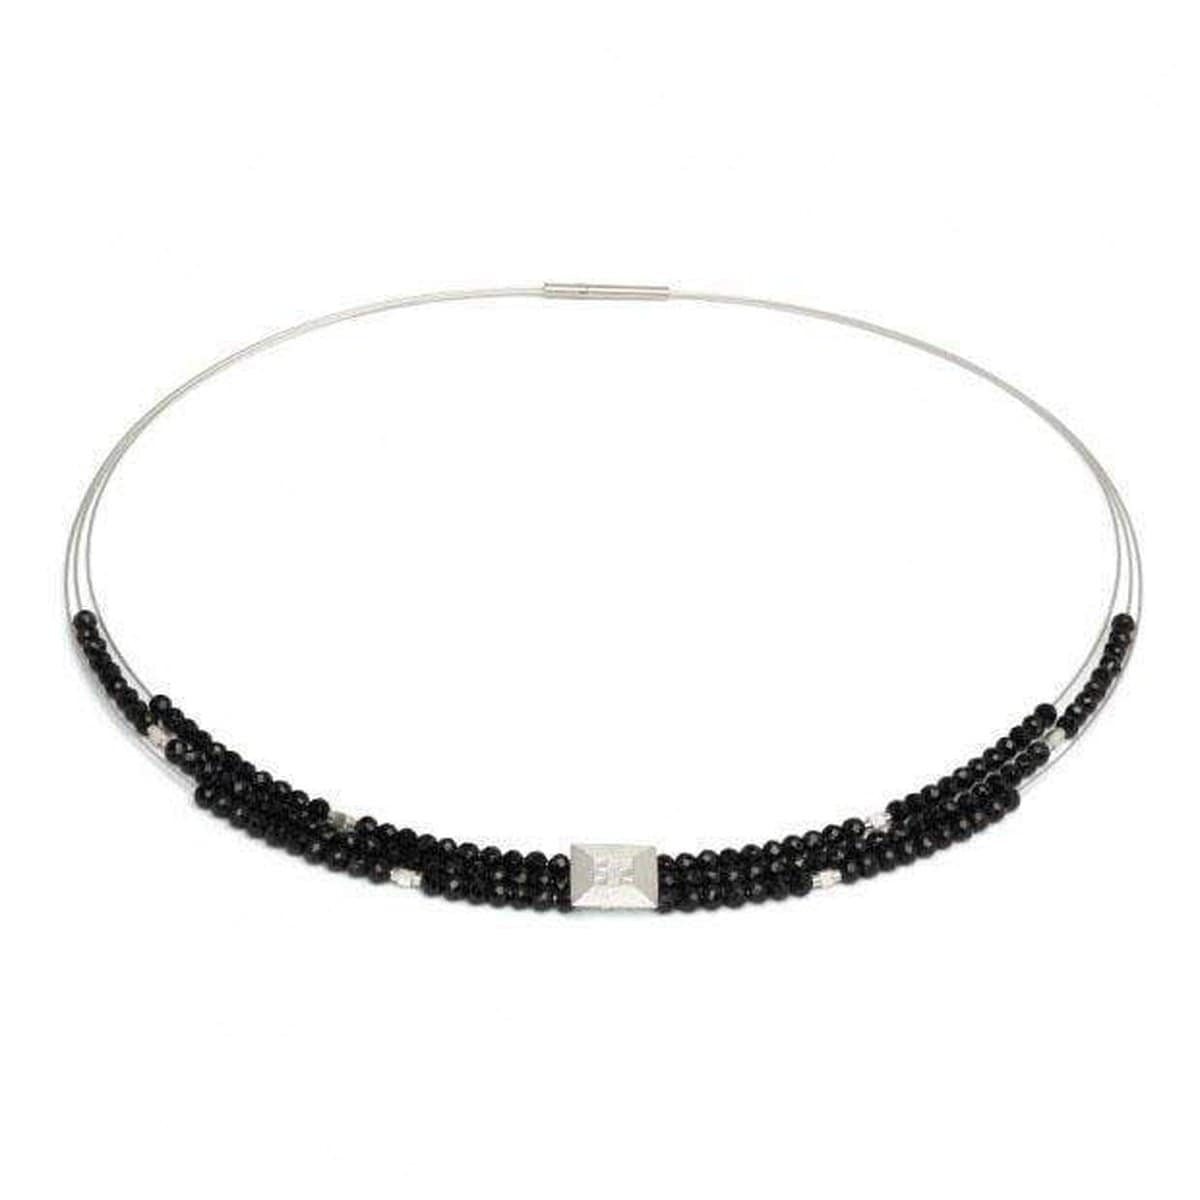 Efinia Black Spinel Necklace - 85090494-Bernd Wolf-Renee Taylor Gallery